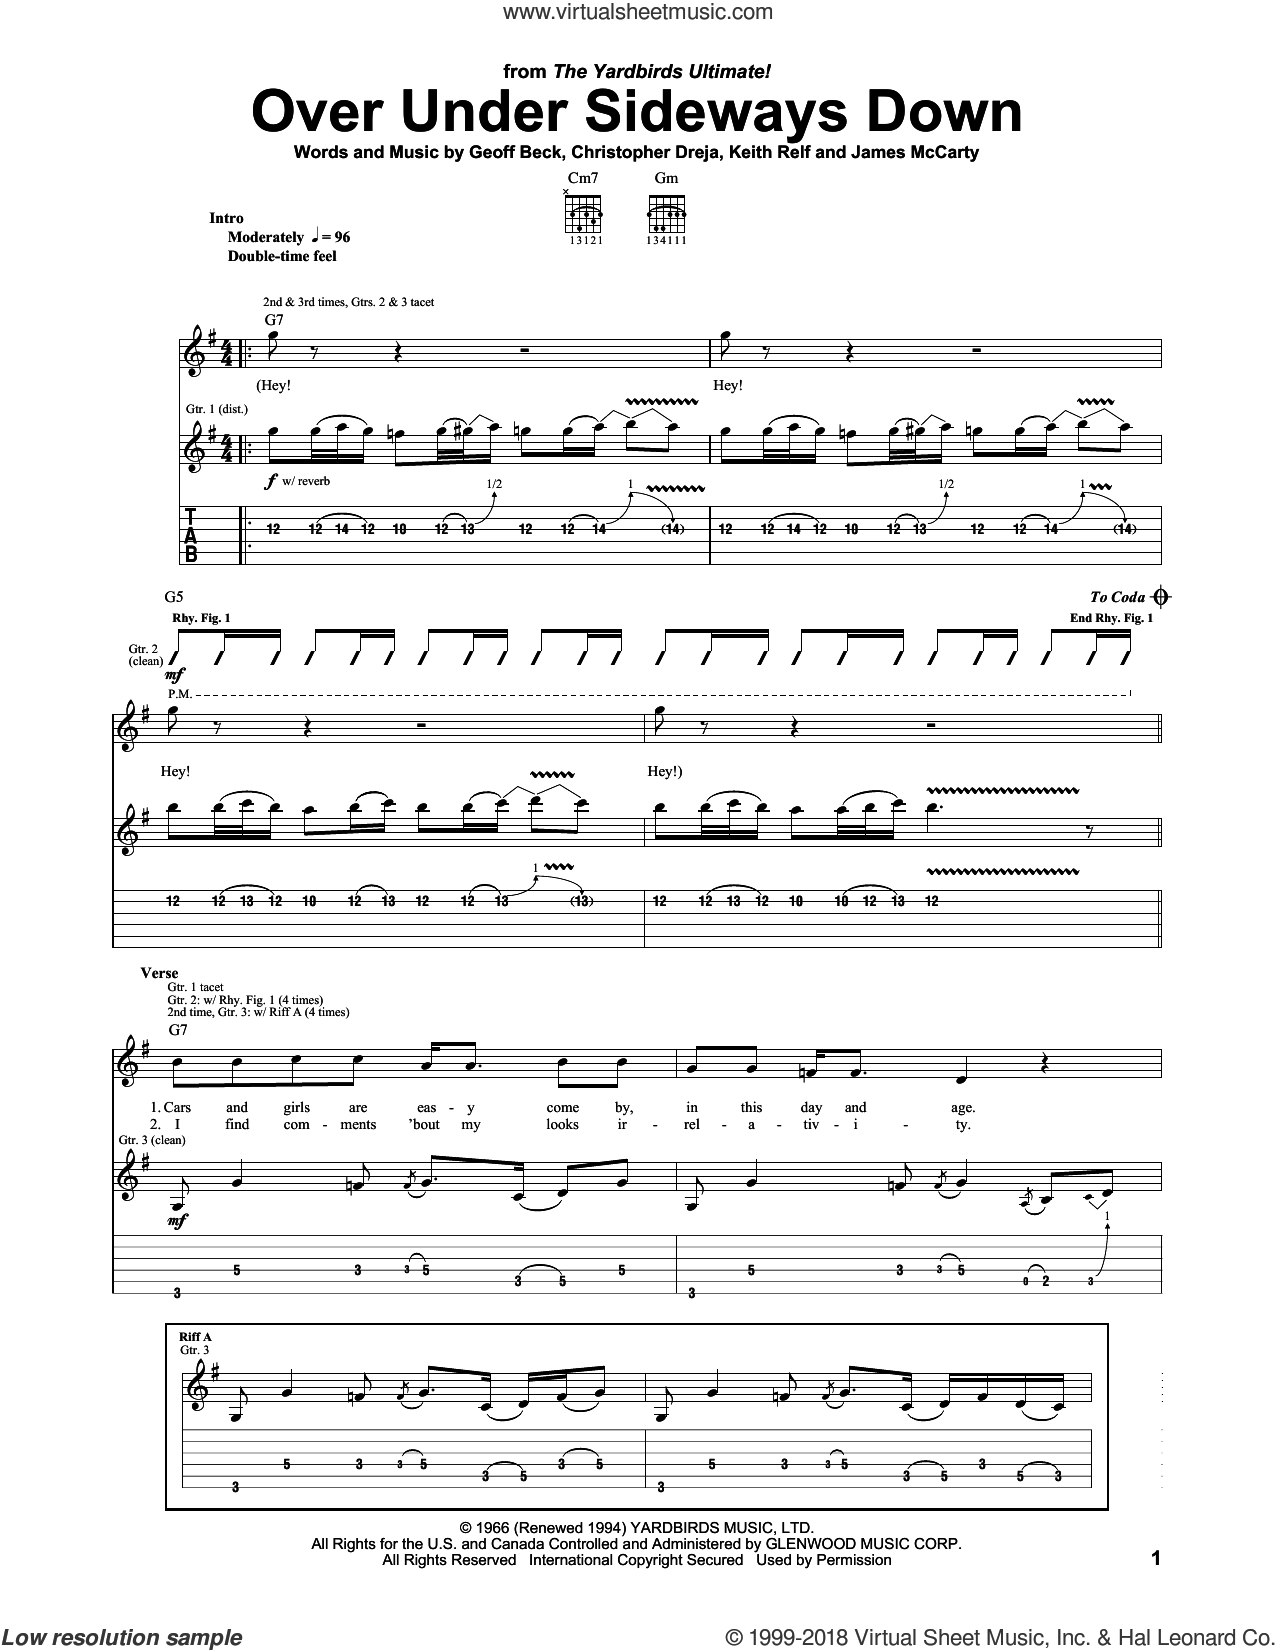 Over Under Sideways Down sheet music for guitar (tablature) by The Yardbirds, Christopher Dreja, Geoff Beck and James McCarty, intermediate skill level